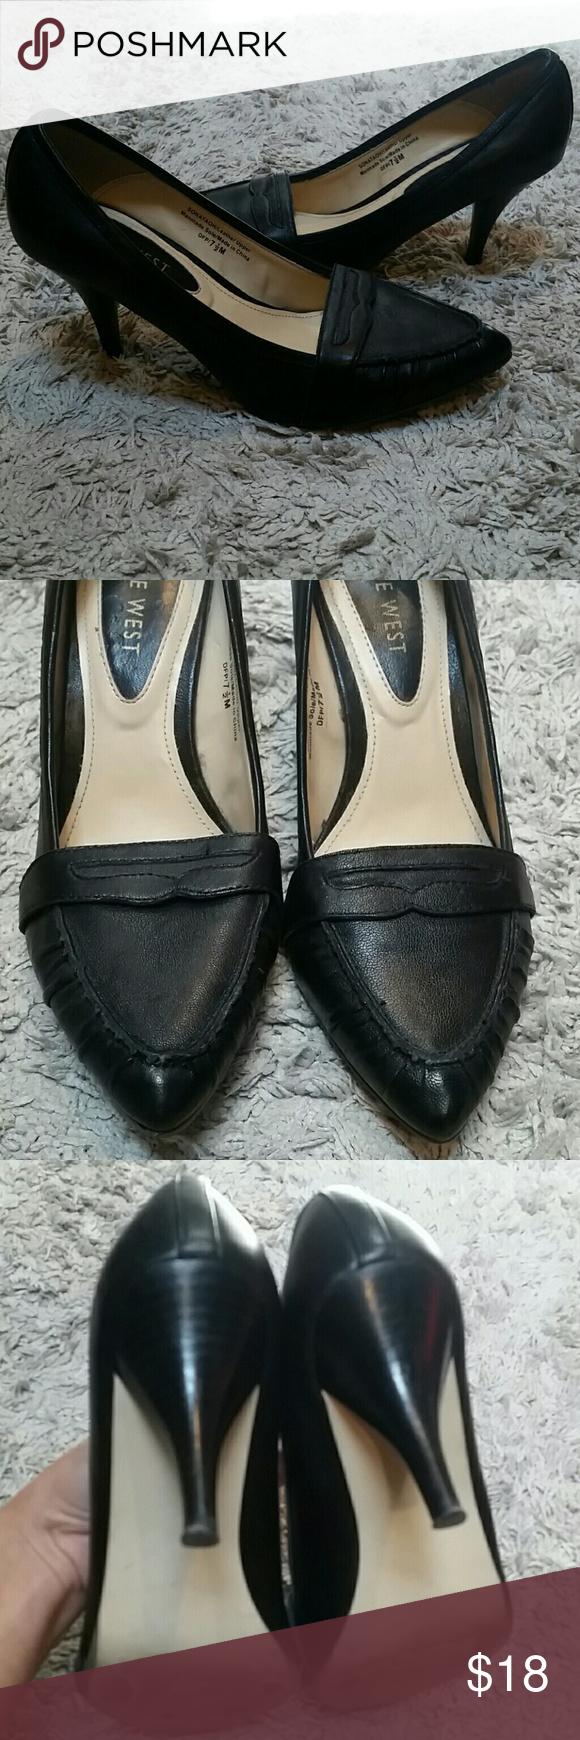 Nine West Black Heel Pumps Worn only about 3 times. In very good condtion! Nine West Shoes Heels